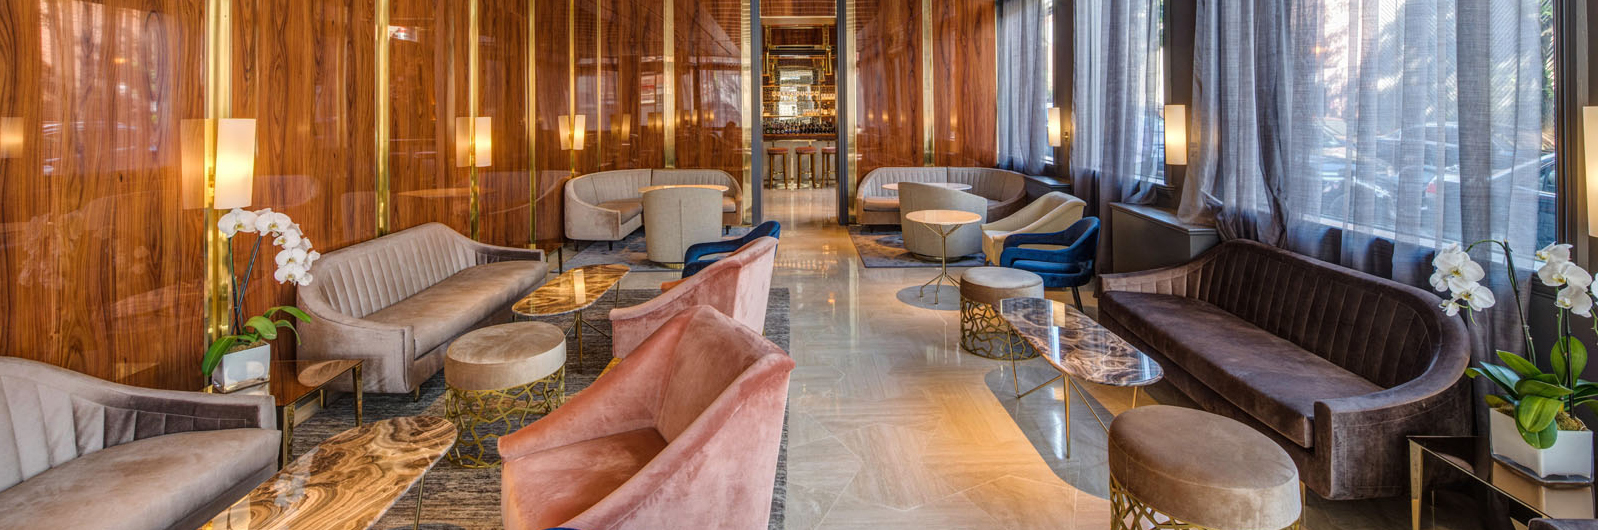 Mr. C Seaport: A Luxe New Hotel from the Cipriani Family